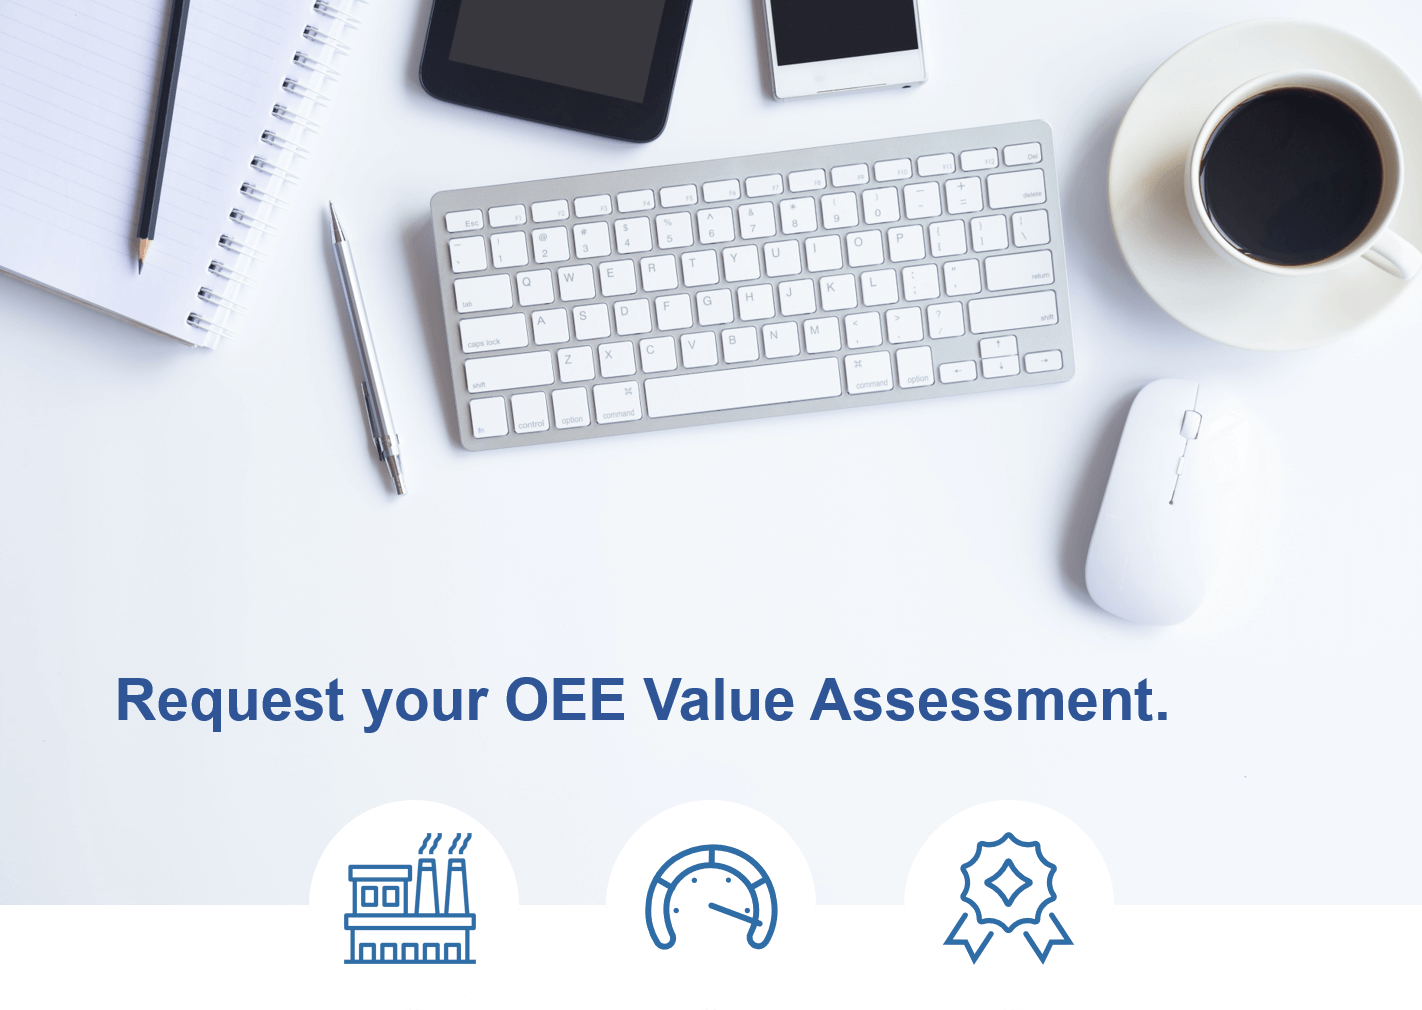 Request an OEE Value Assessment